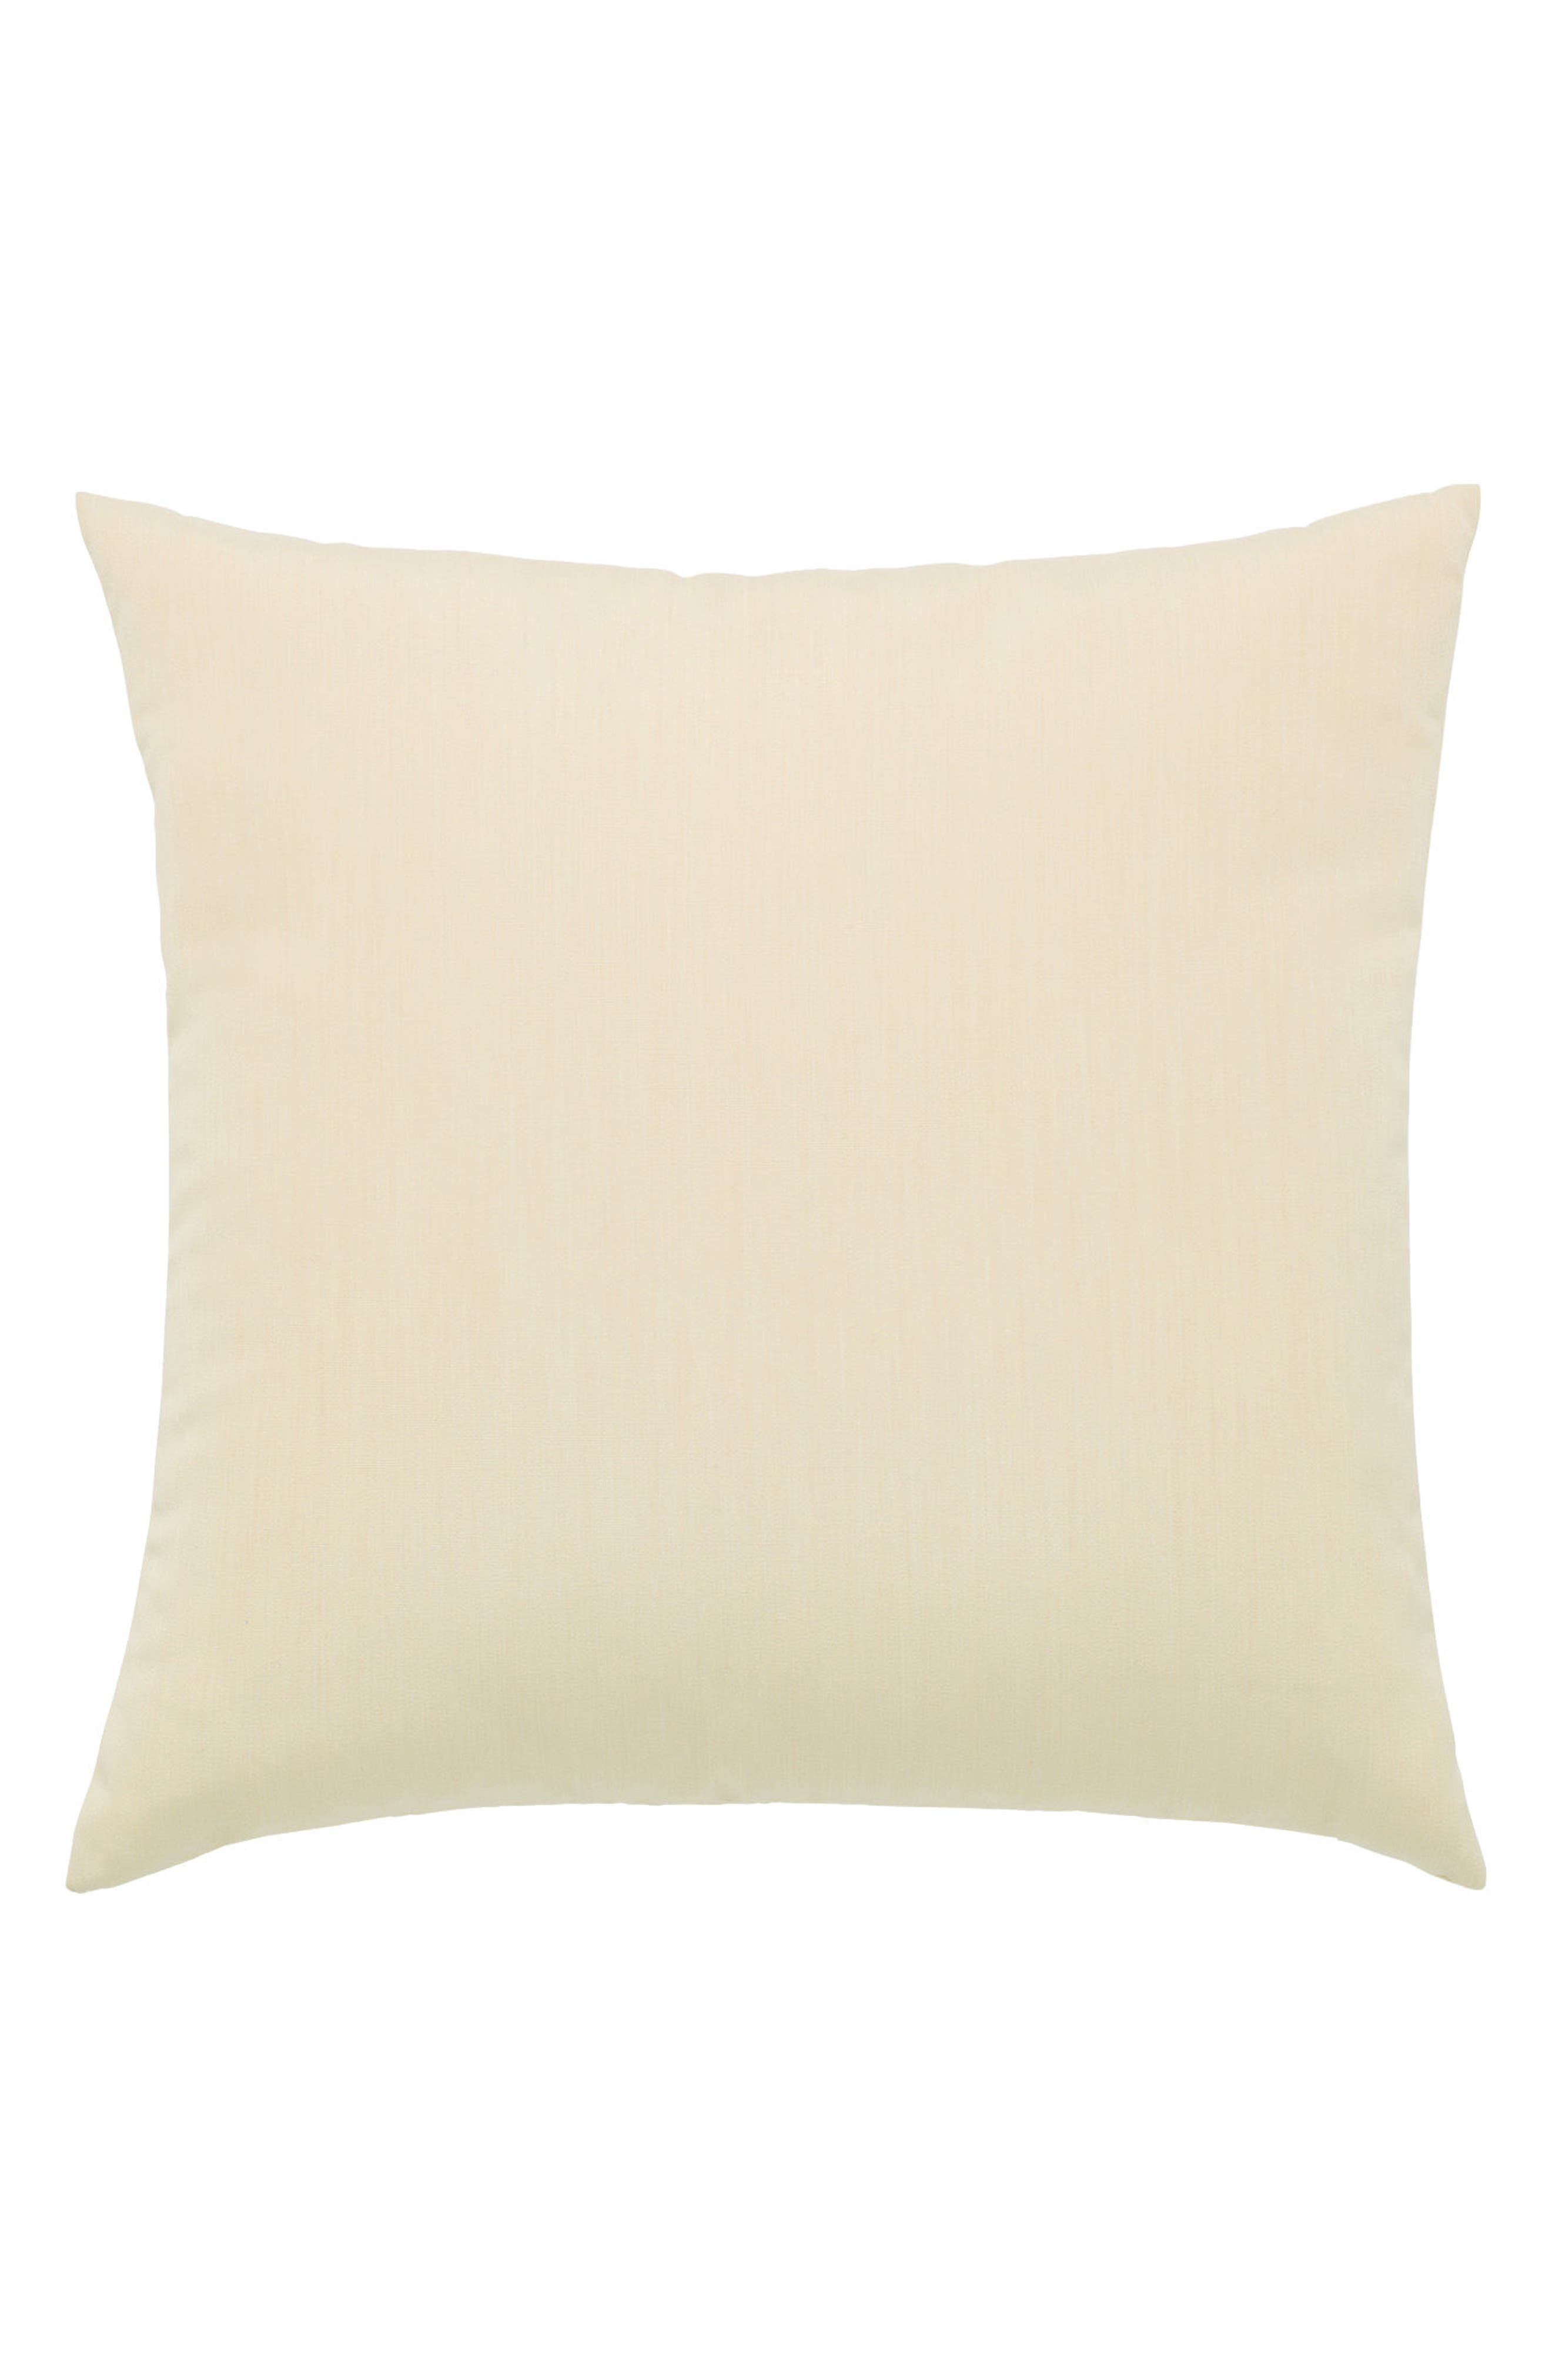 Grand Turk Stripe Indoor/Outdoor Accent Pillow,                             Alternate thumbnail 2, color,                             400